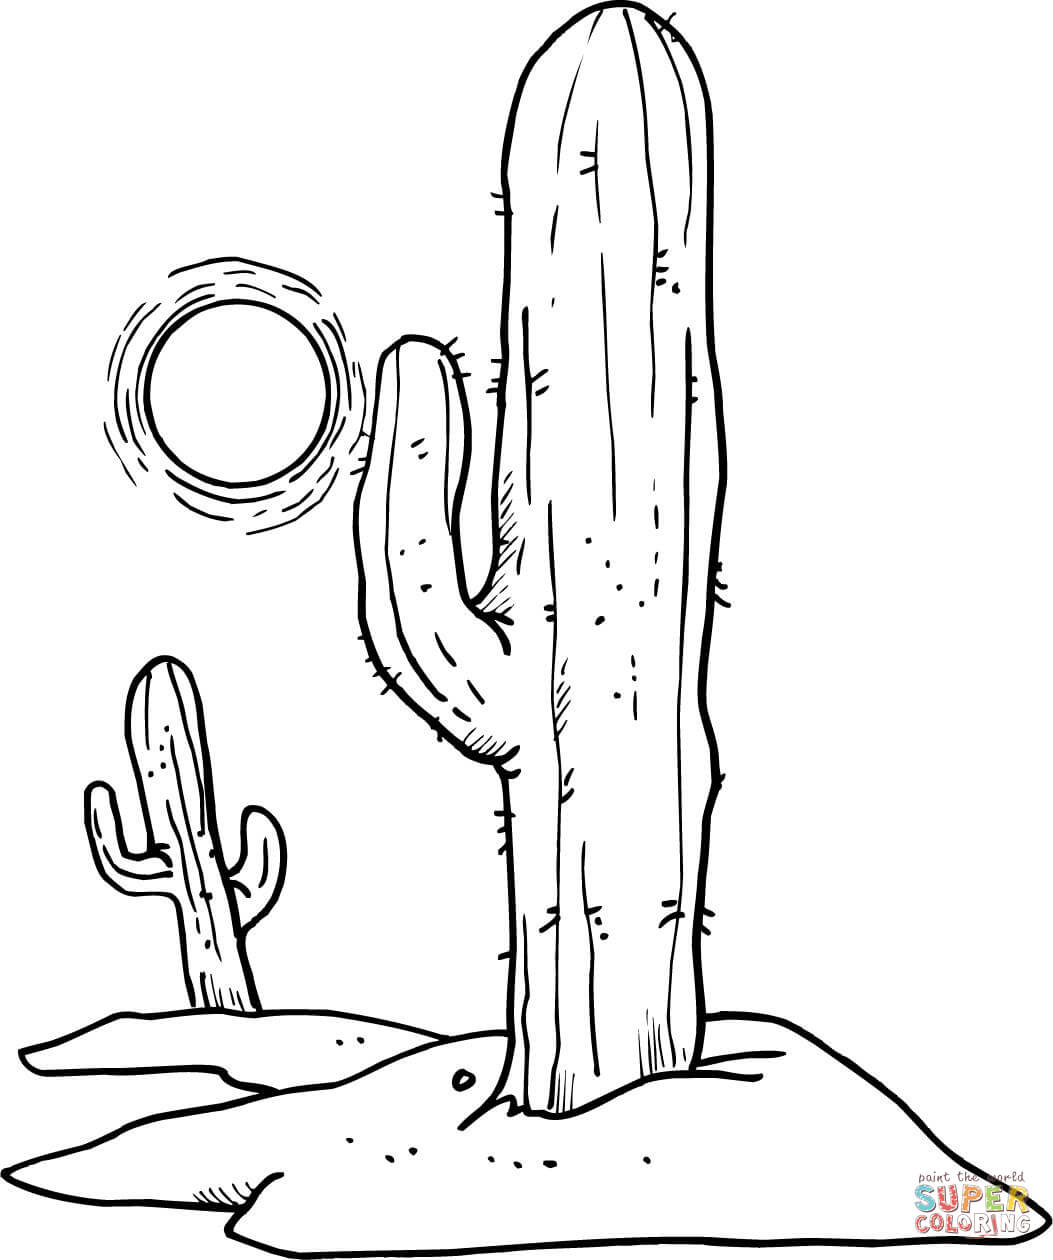 Sun Over Desert Cactuses Coloring Page